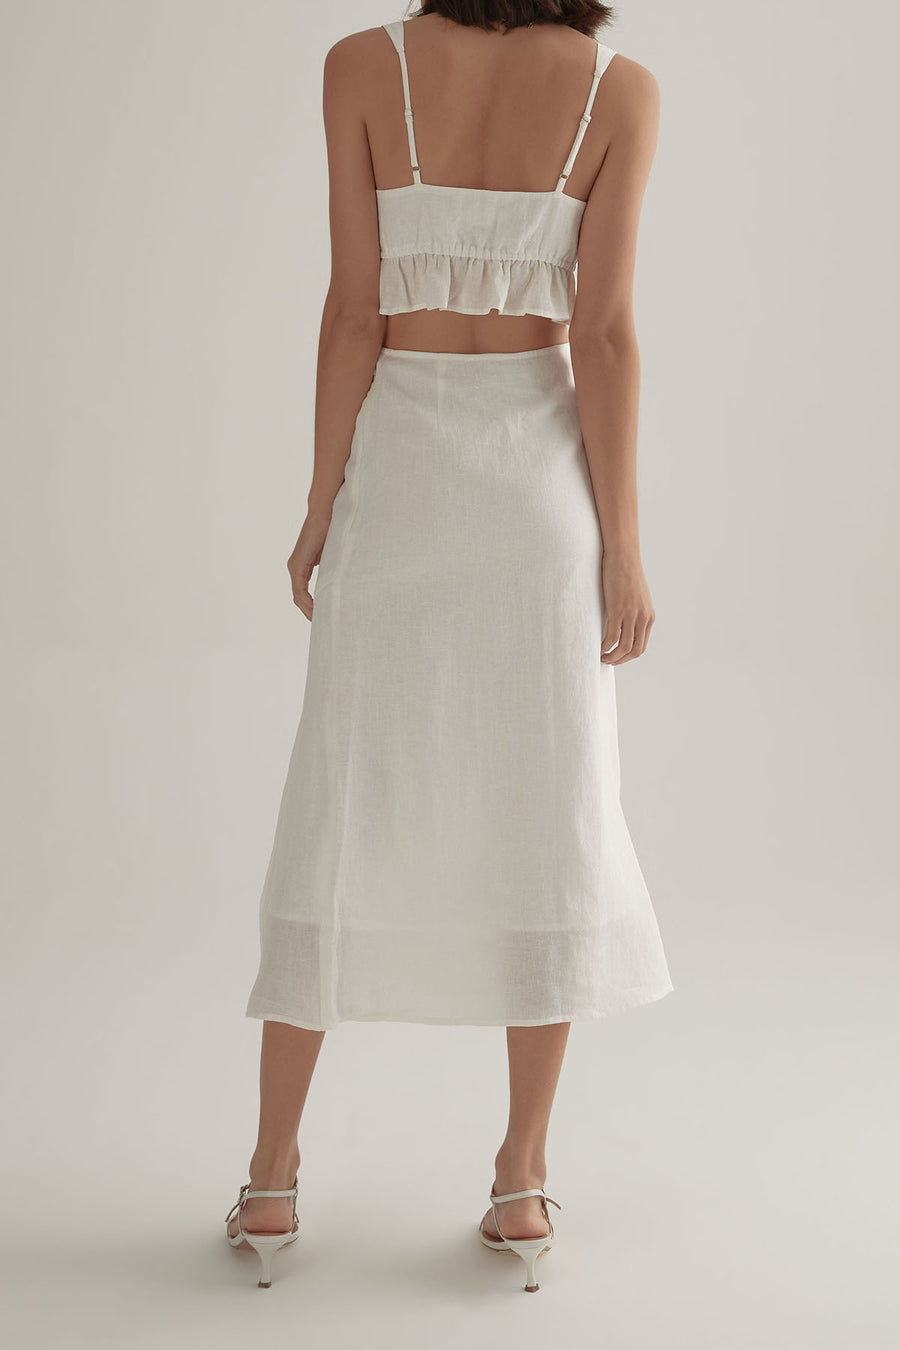 LOTTIE SKIRT WHITE